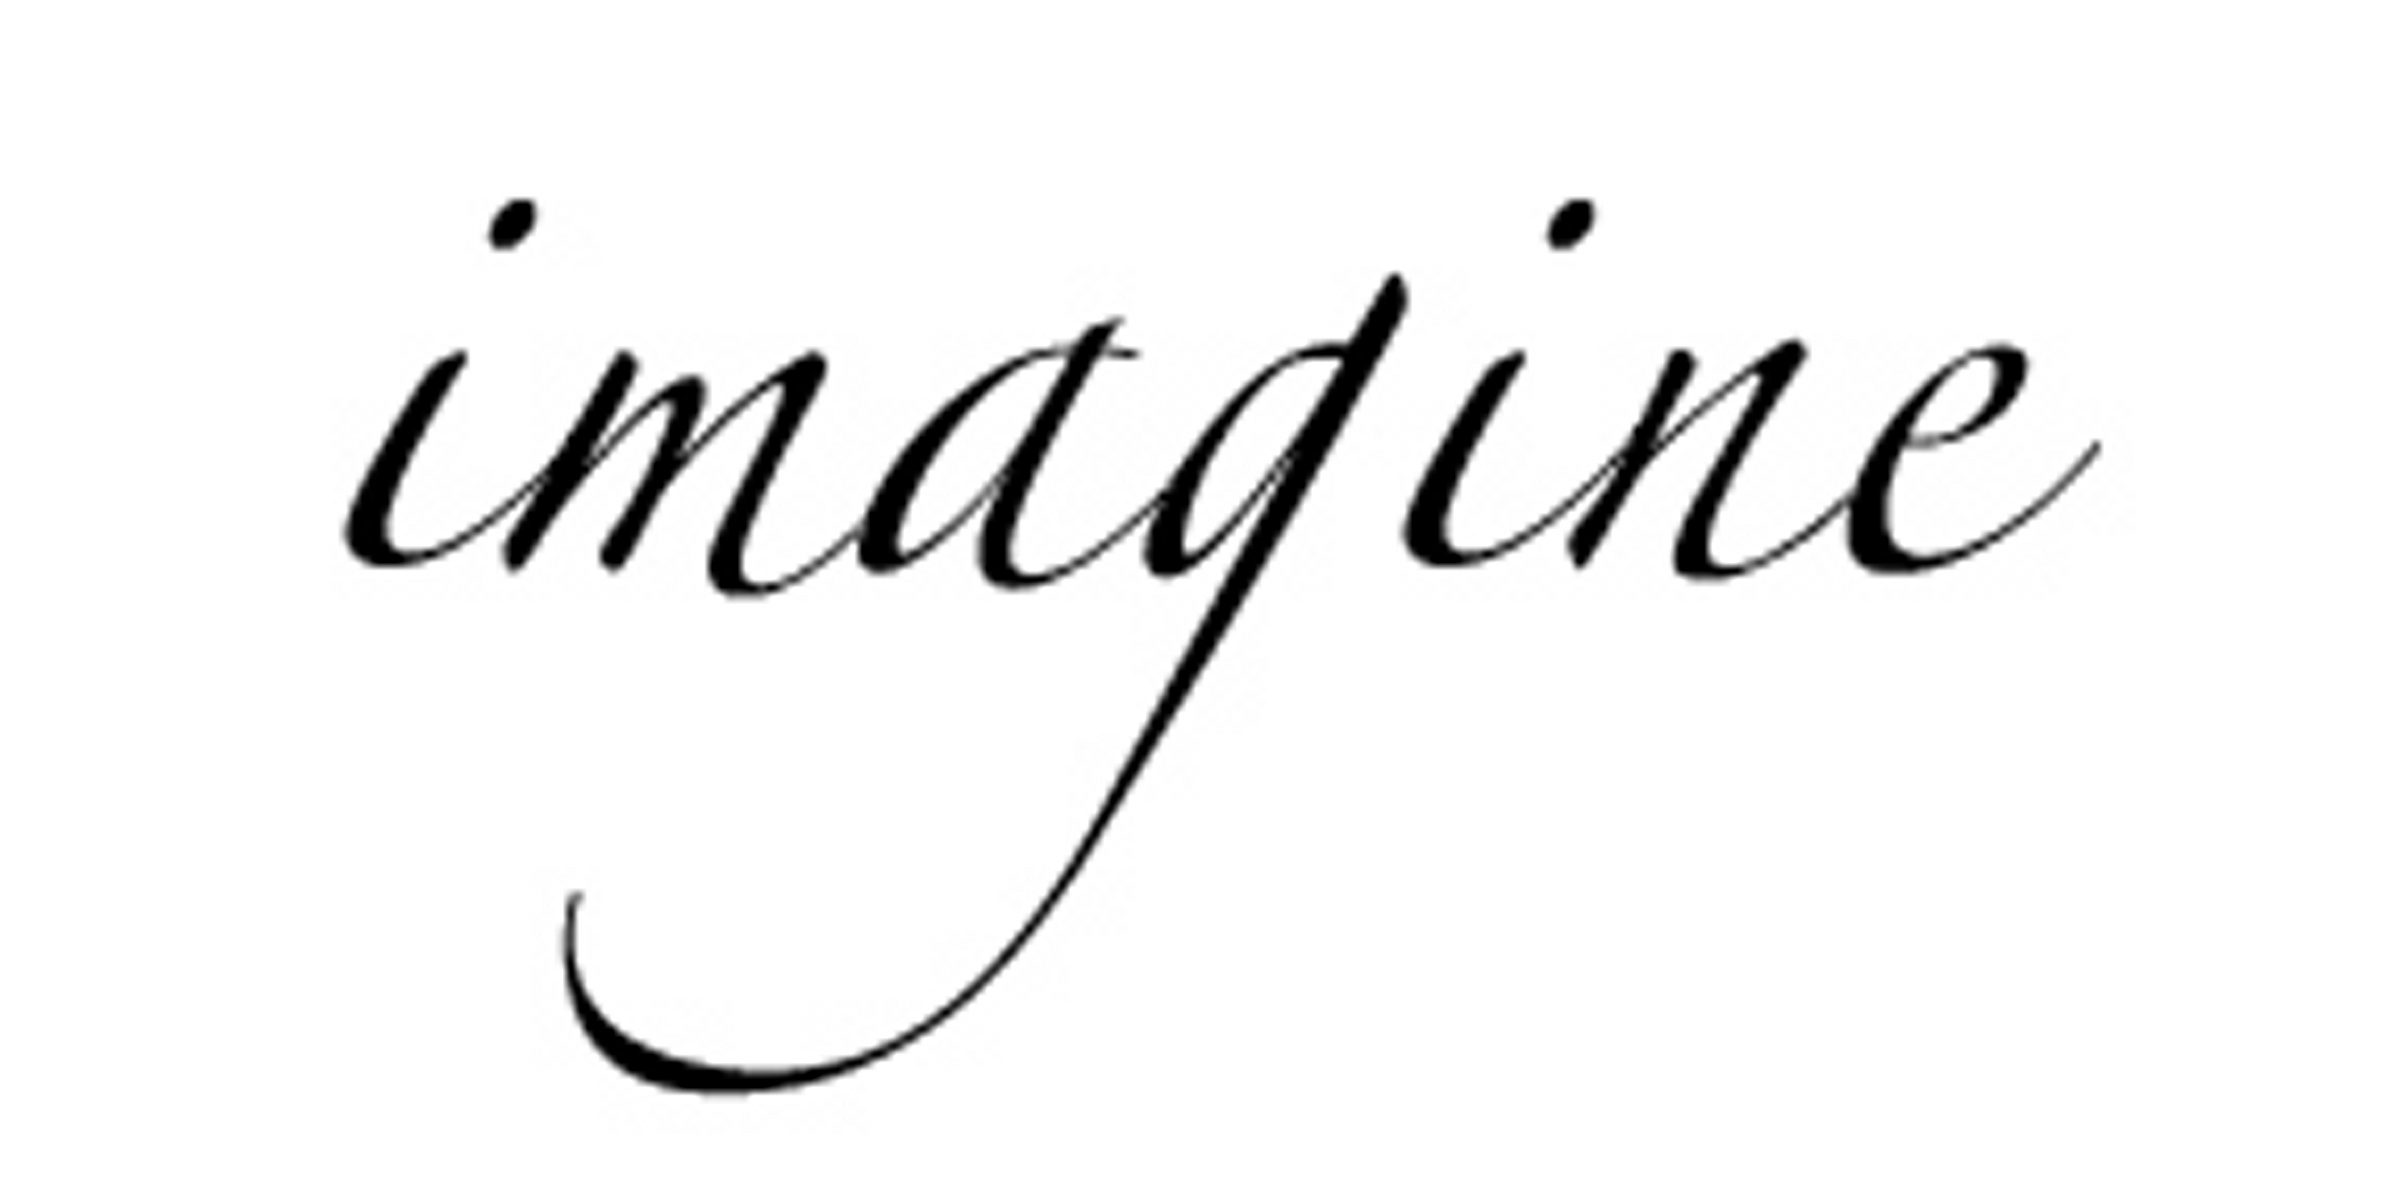 Imagine | What Glenn Writes